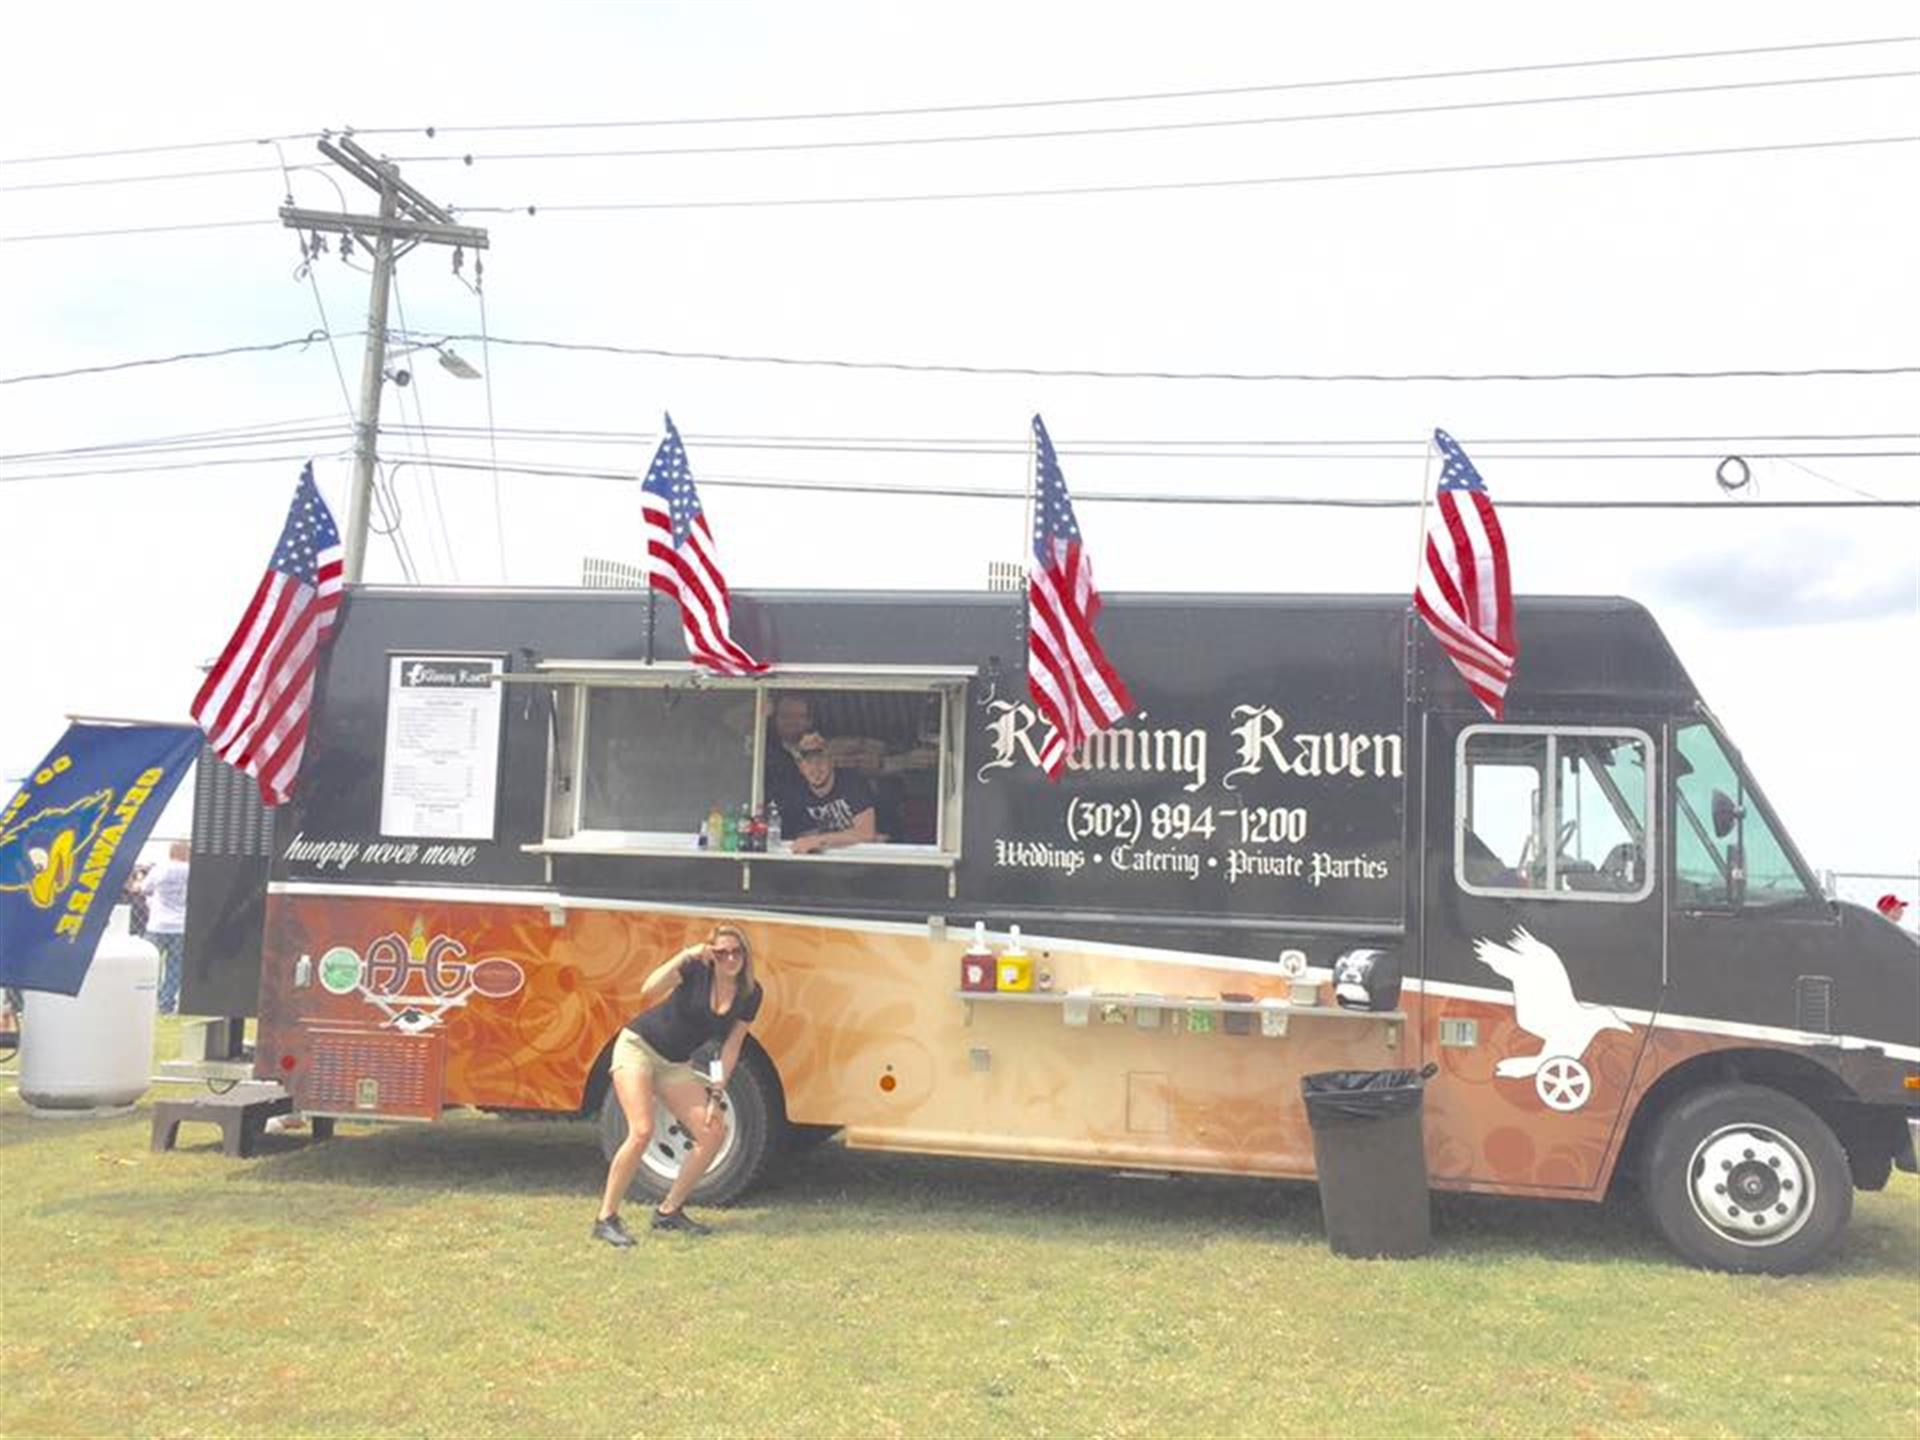 The roaming raven truck outside on the grass